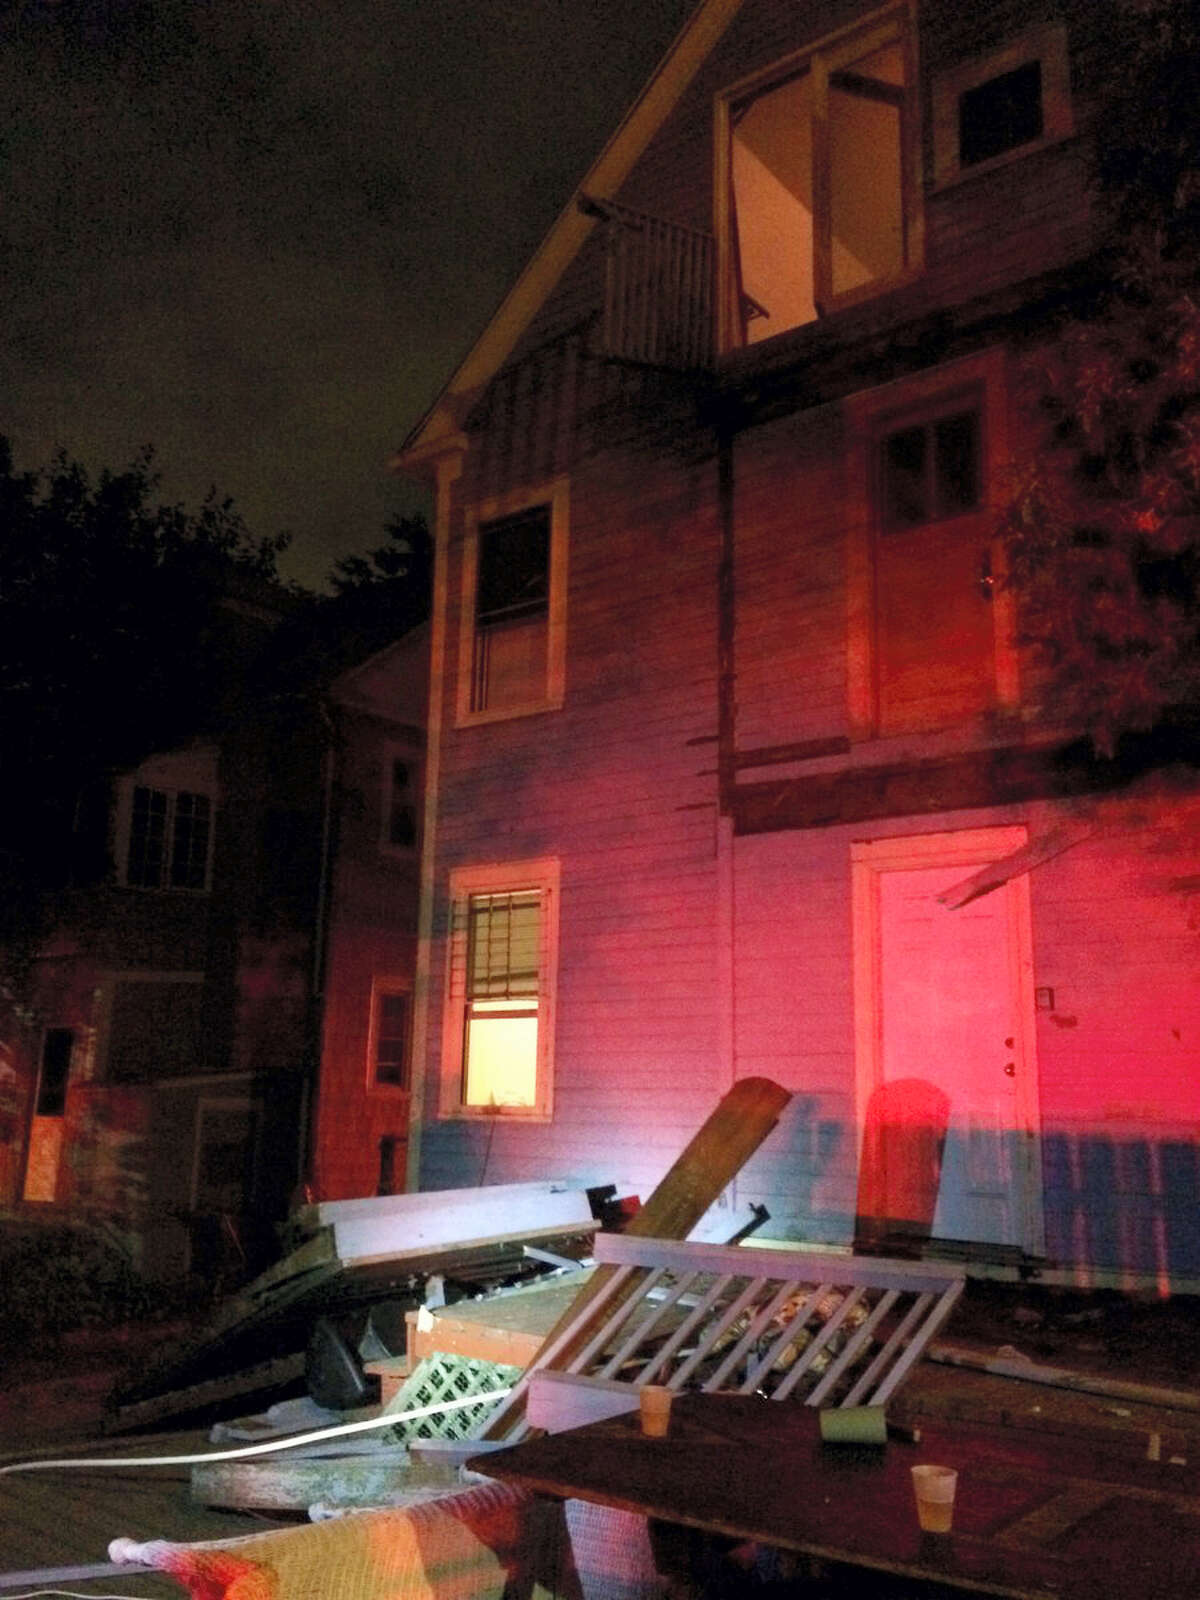 This photo provided by the Hartford Police Department shows a collapsed deck at a house near Trinity College in Hartford, Conn. on Sept. 10, 2016. Deputy Chief Brian Foley of the Hartford police posted on his Twitter feed that a third-floor deck of a house about two-tenths of a mile from the Trinity campus collapsed onto a second-floor deck, which subsequently fell onto a first-floor deck.